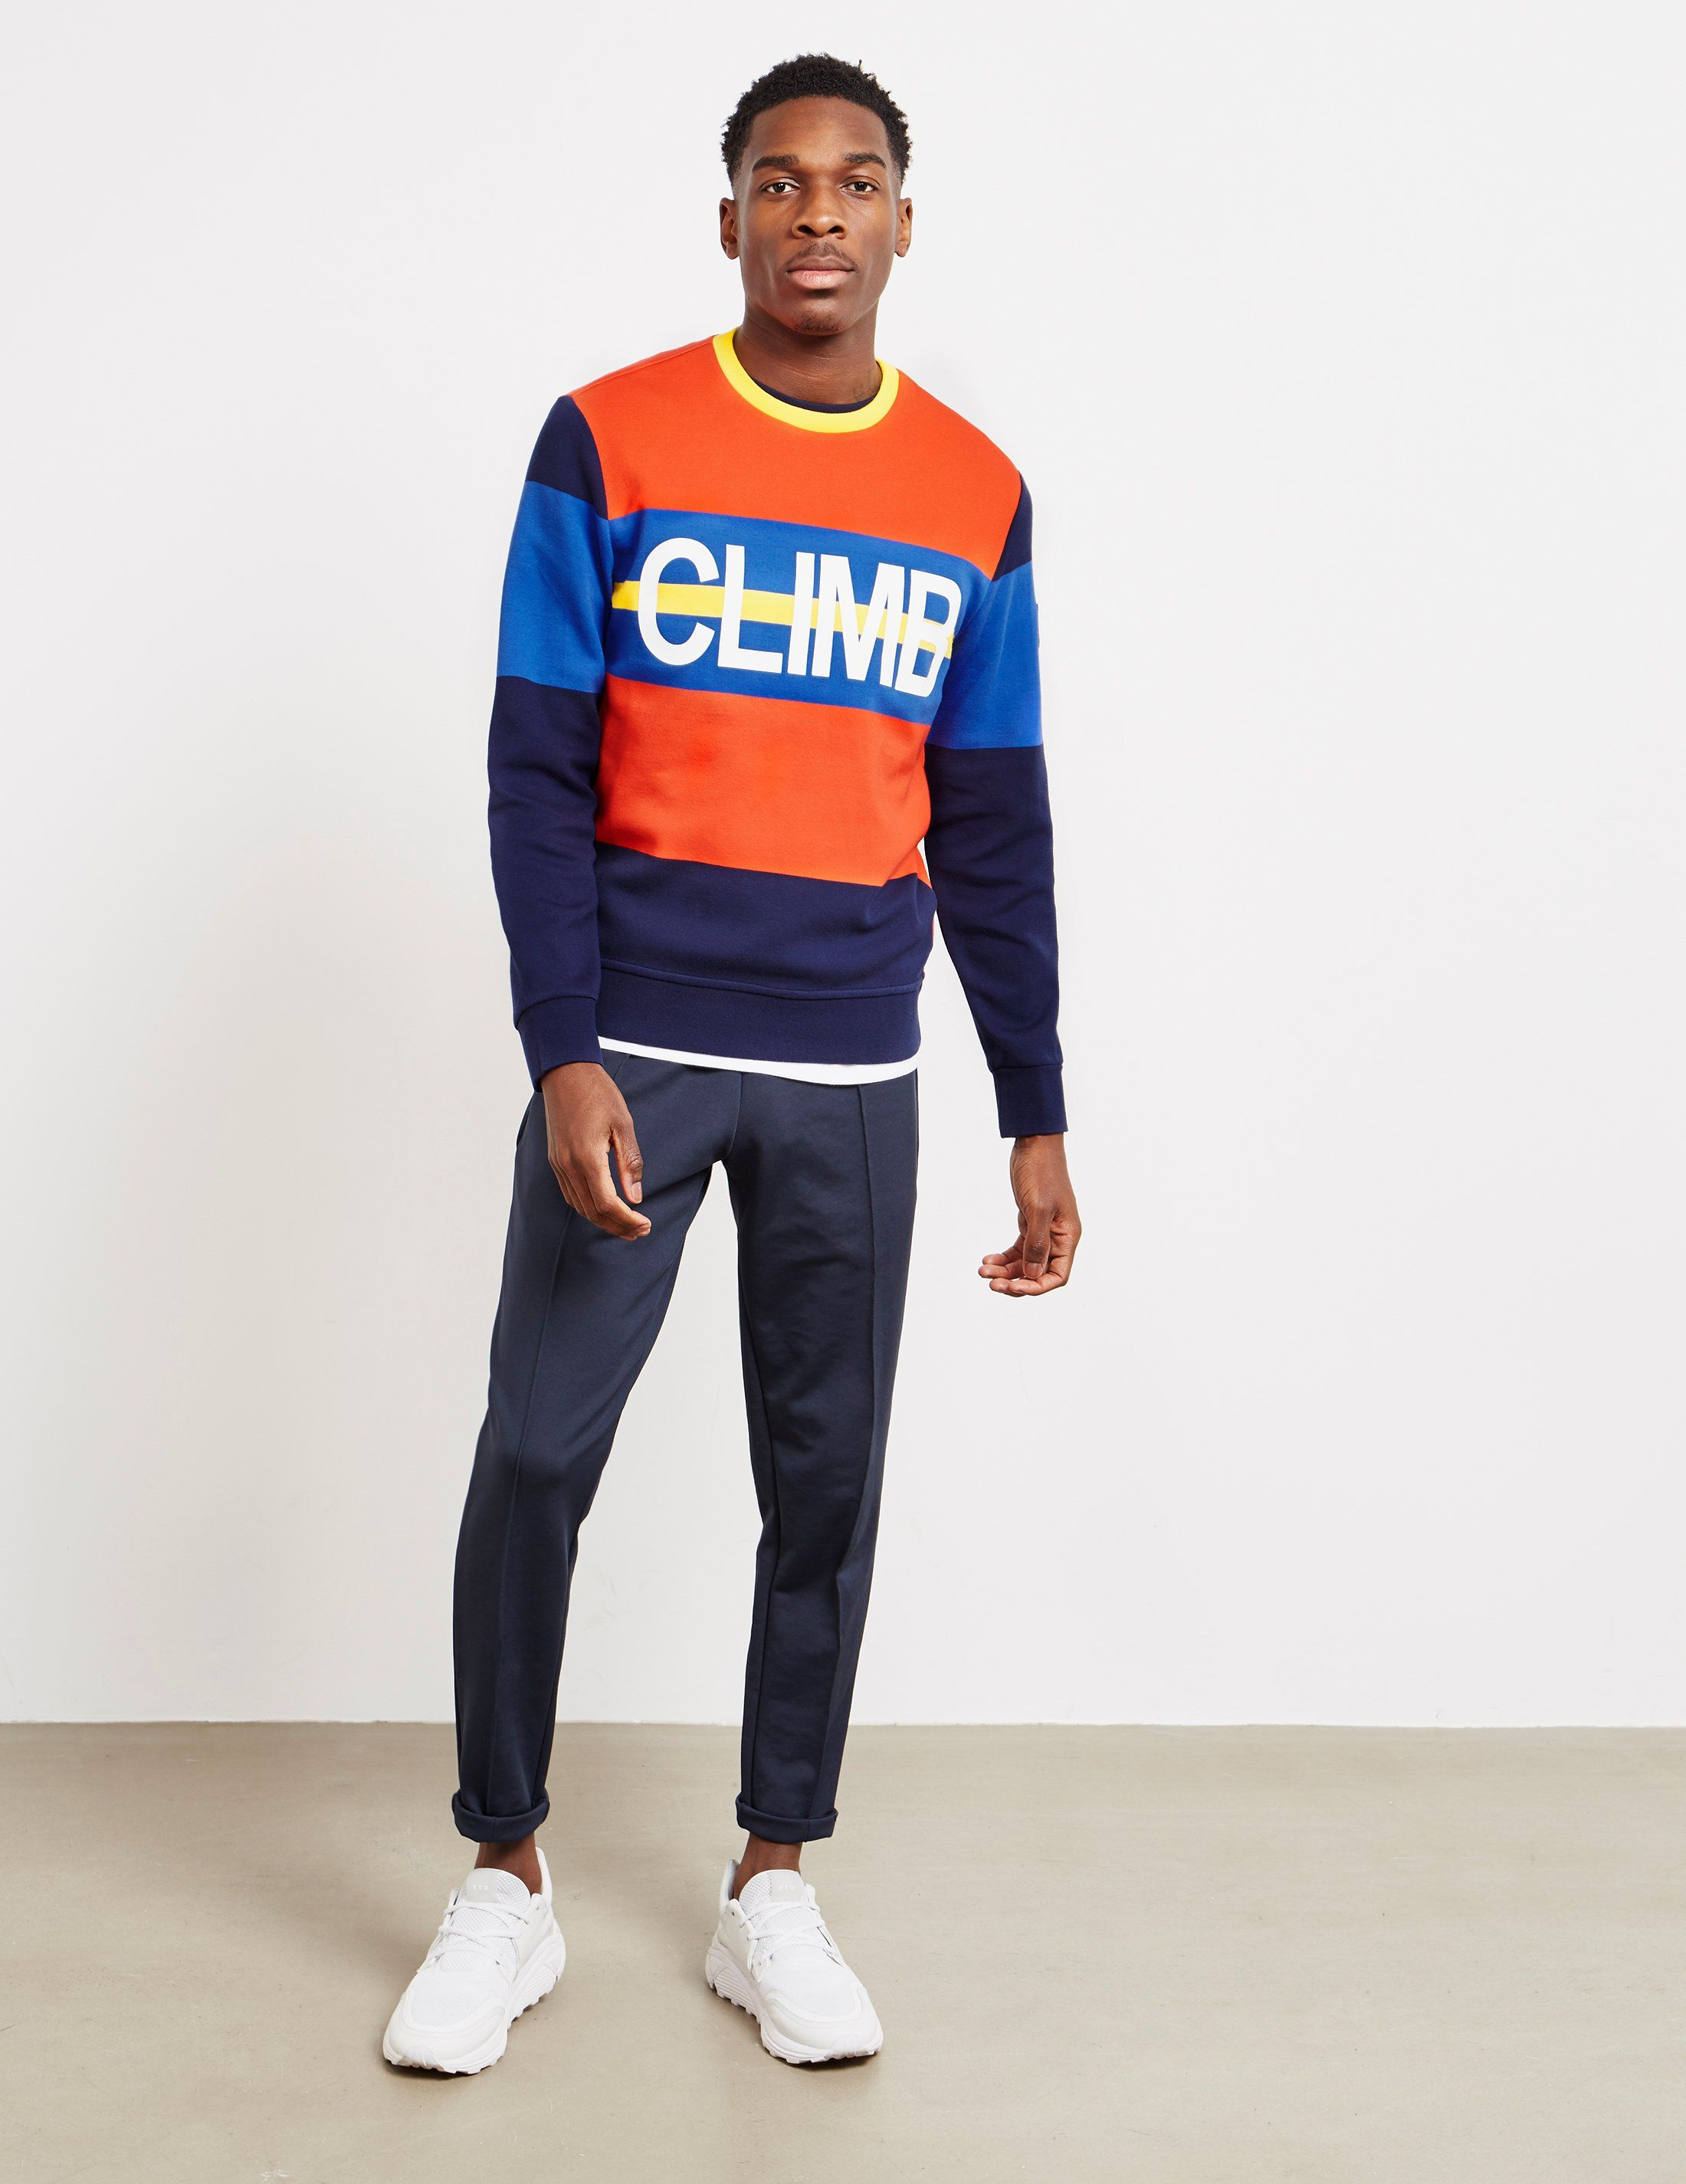 Polo Ralph Lauren Hi Tech Climb Sweatshirt